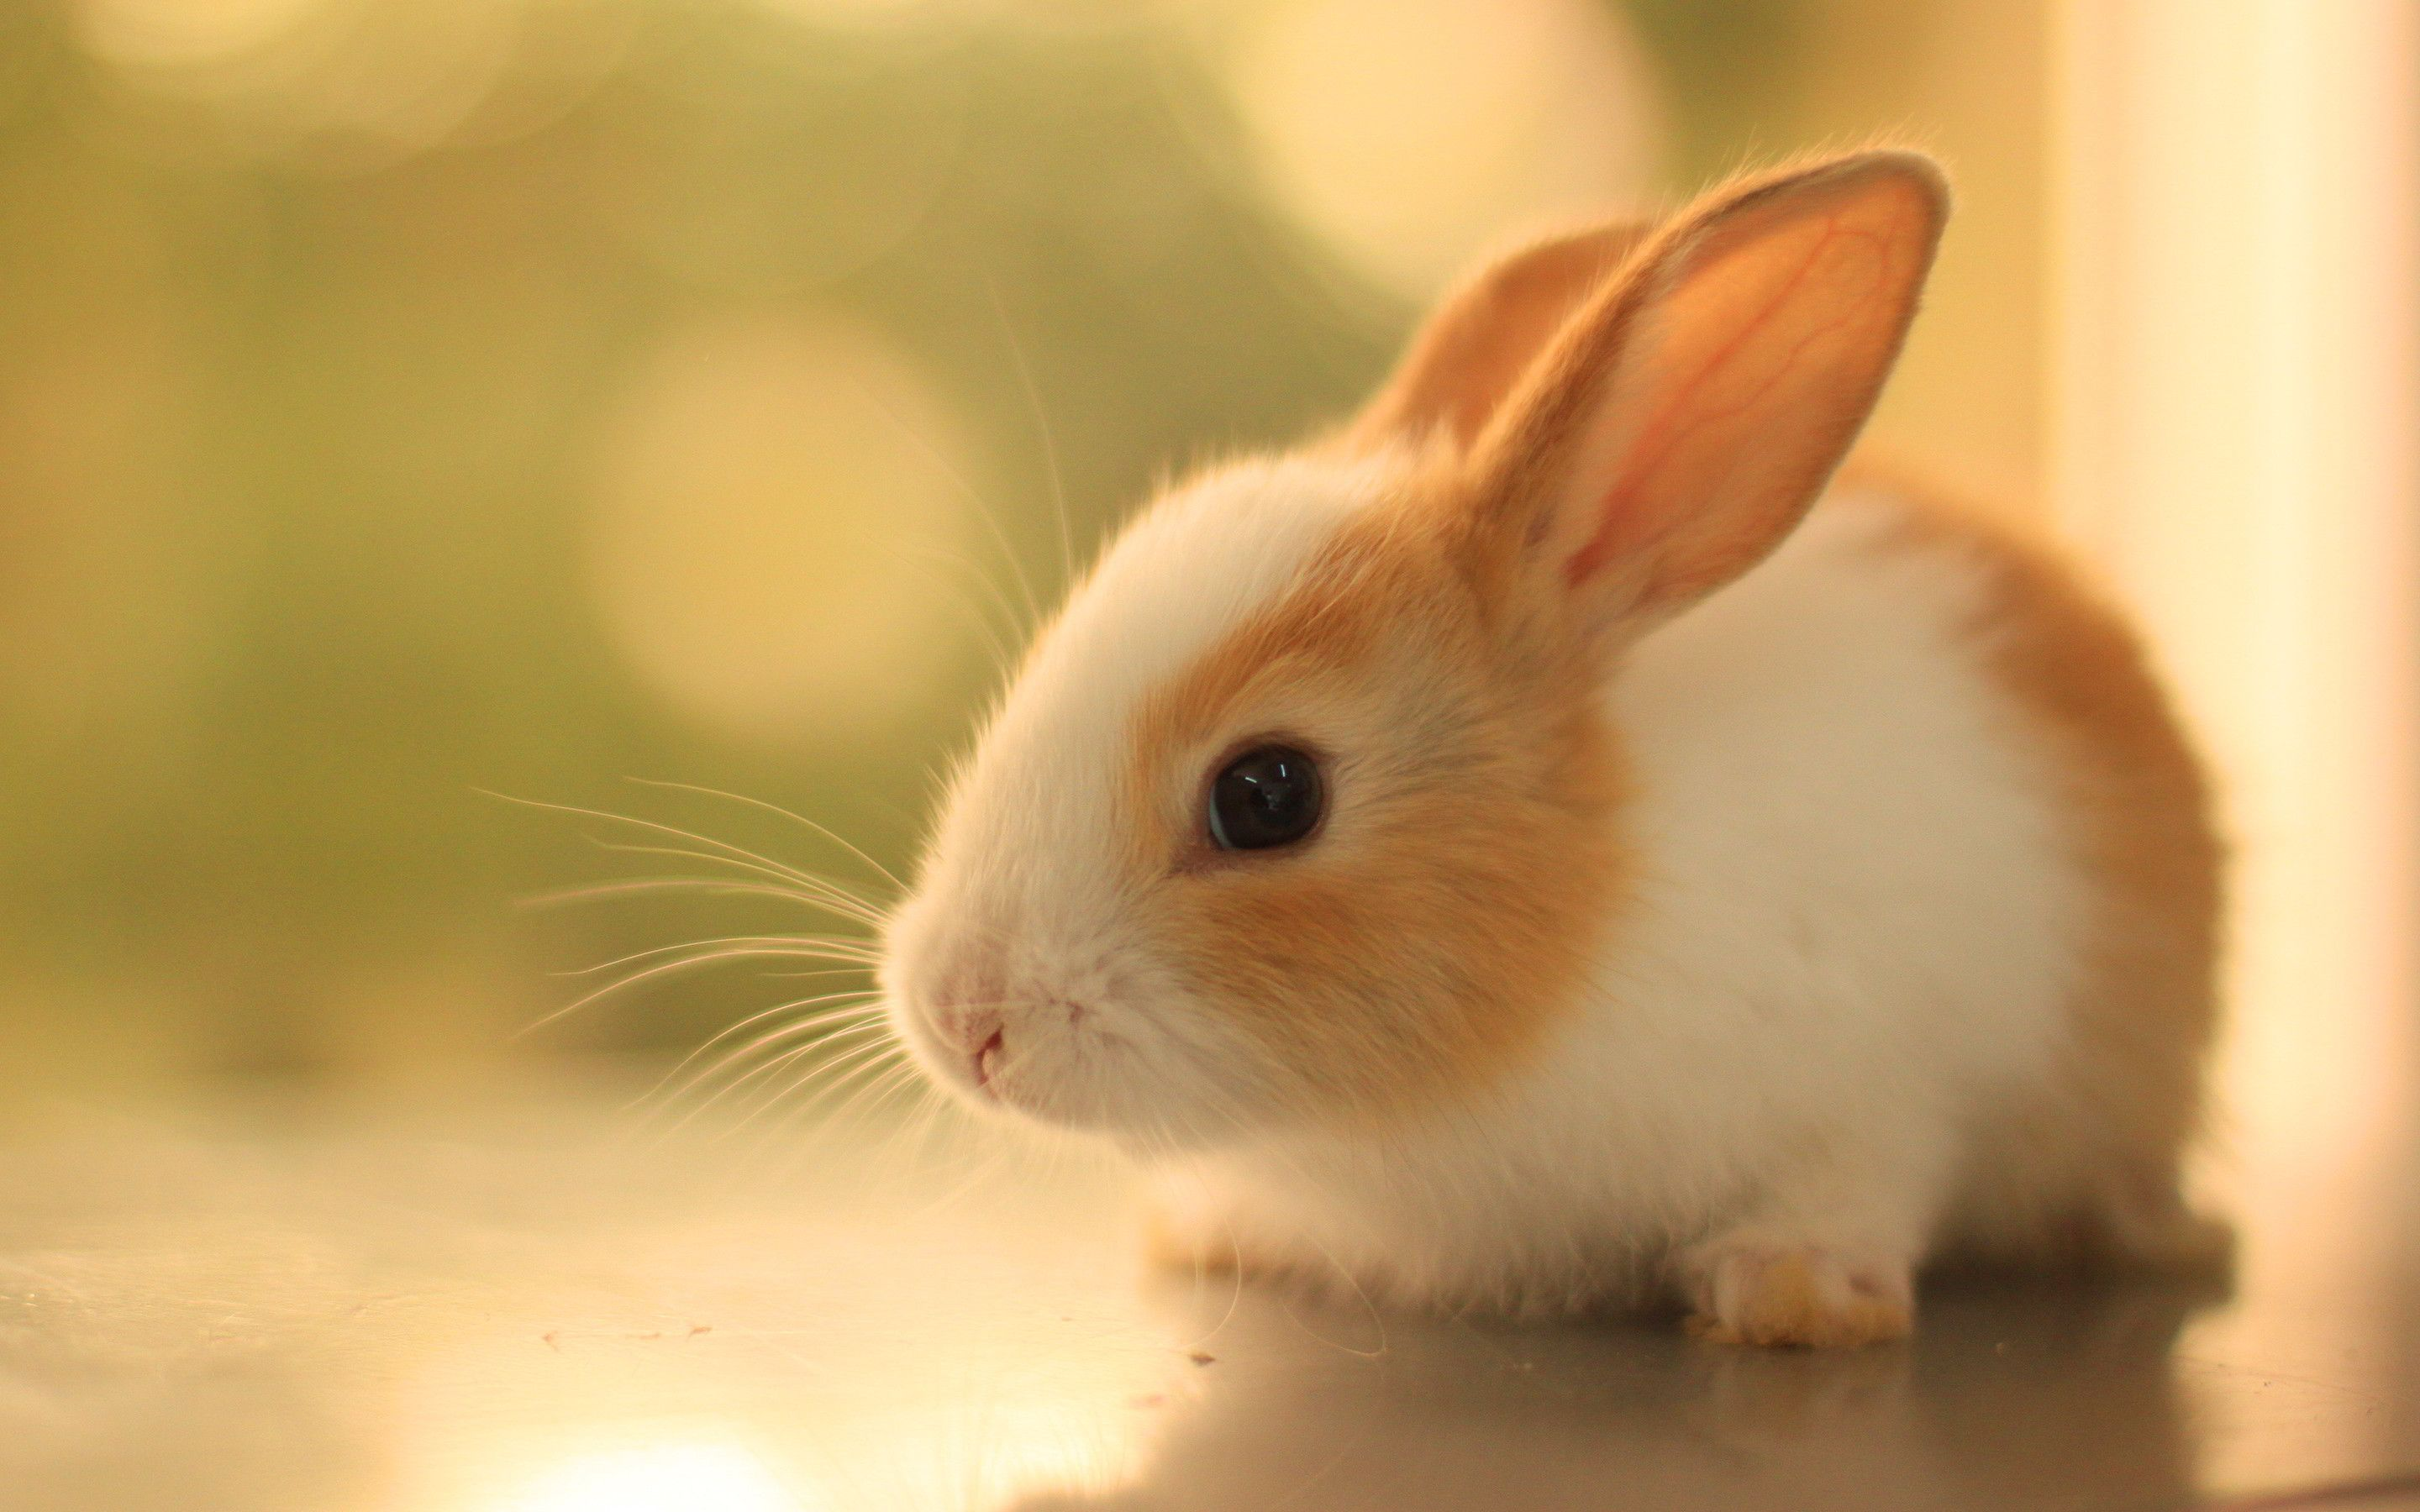 Cute Bunny Rabbits Wallpapers Top Free Cute Bunny Rabbits Backgrounds Wallpaperaccess